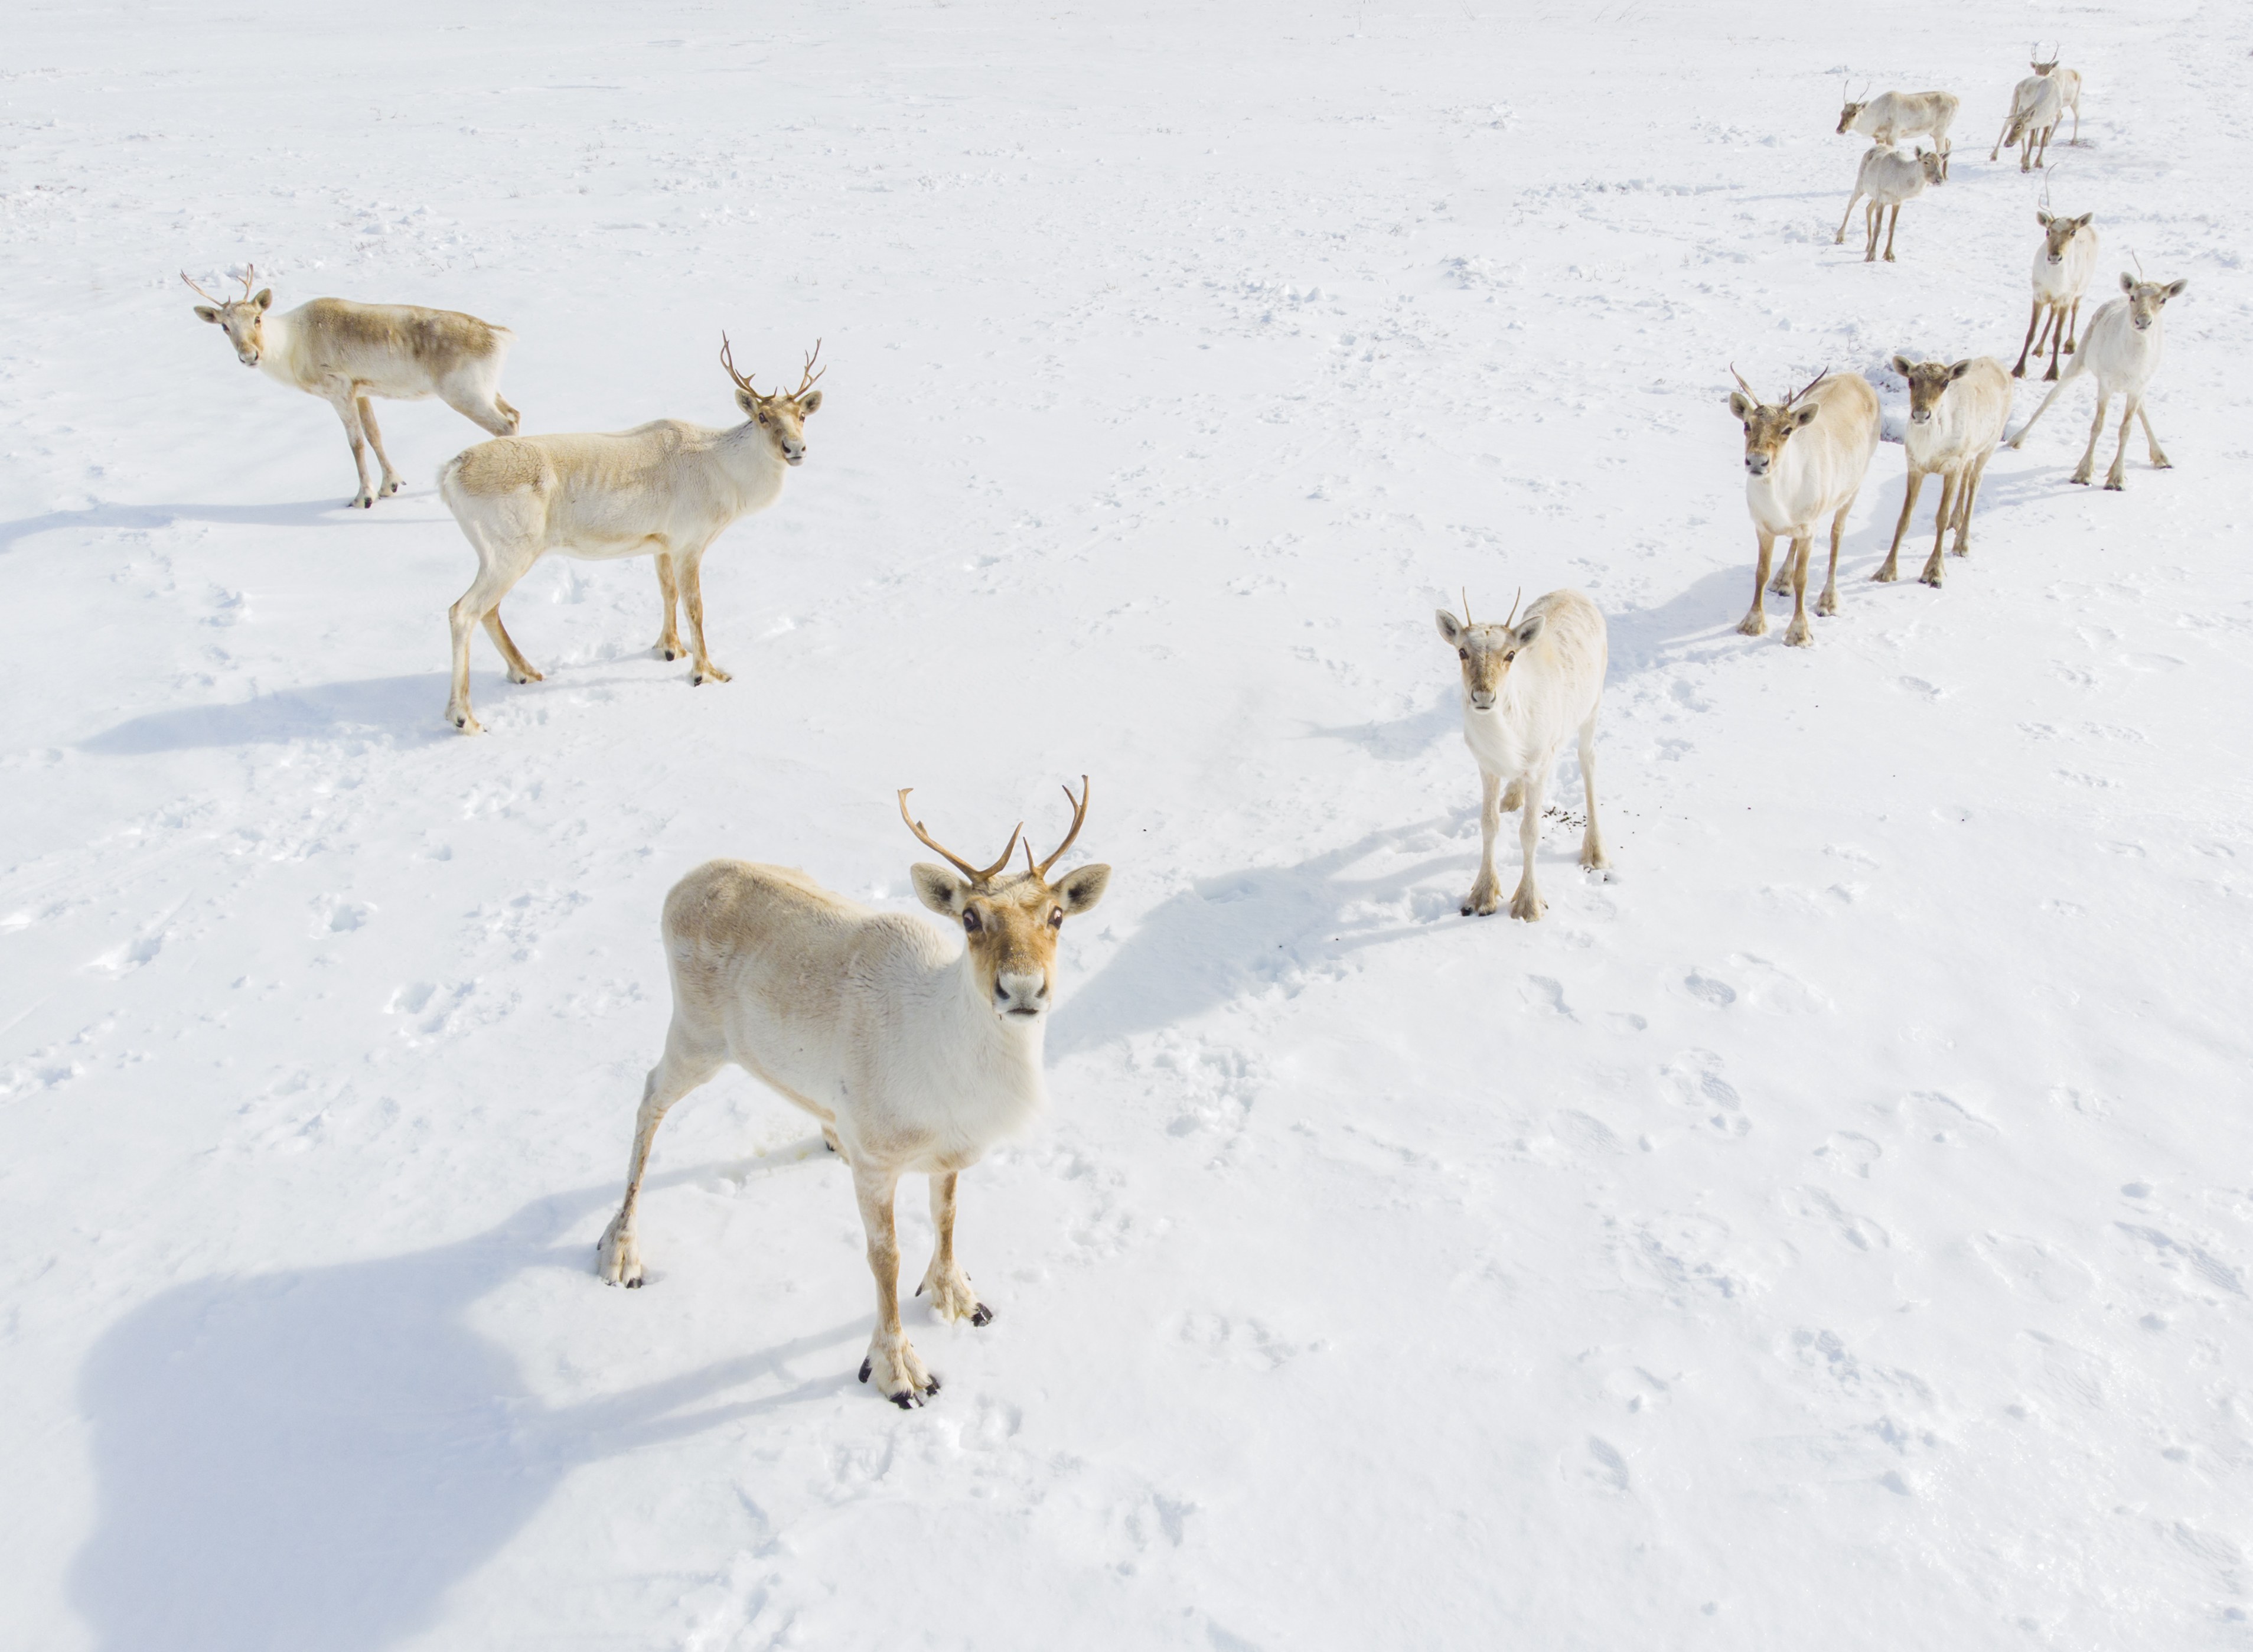 © Bailey Parsons, Canada, entry, Open competition, Natural World & Wildlife, 2021 Sony World Photography Awards